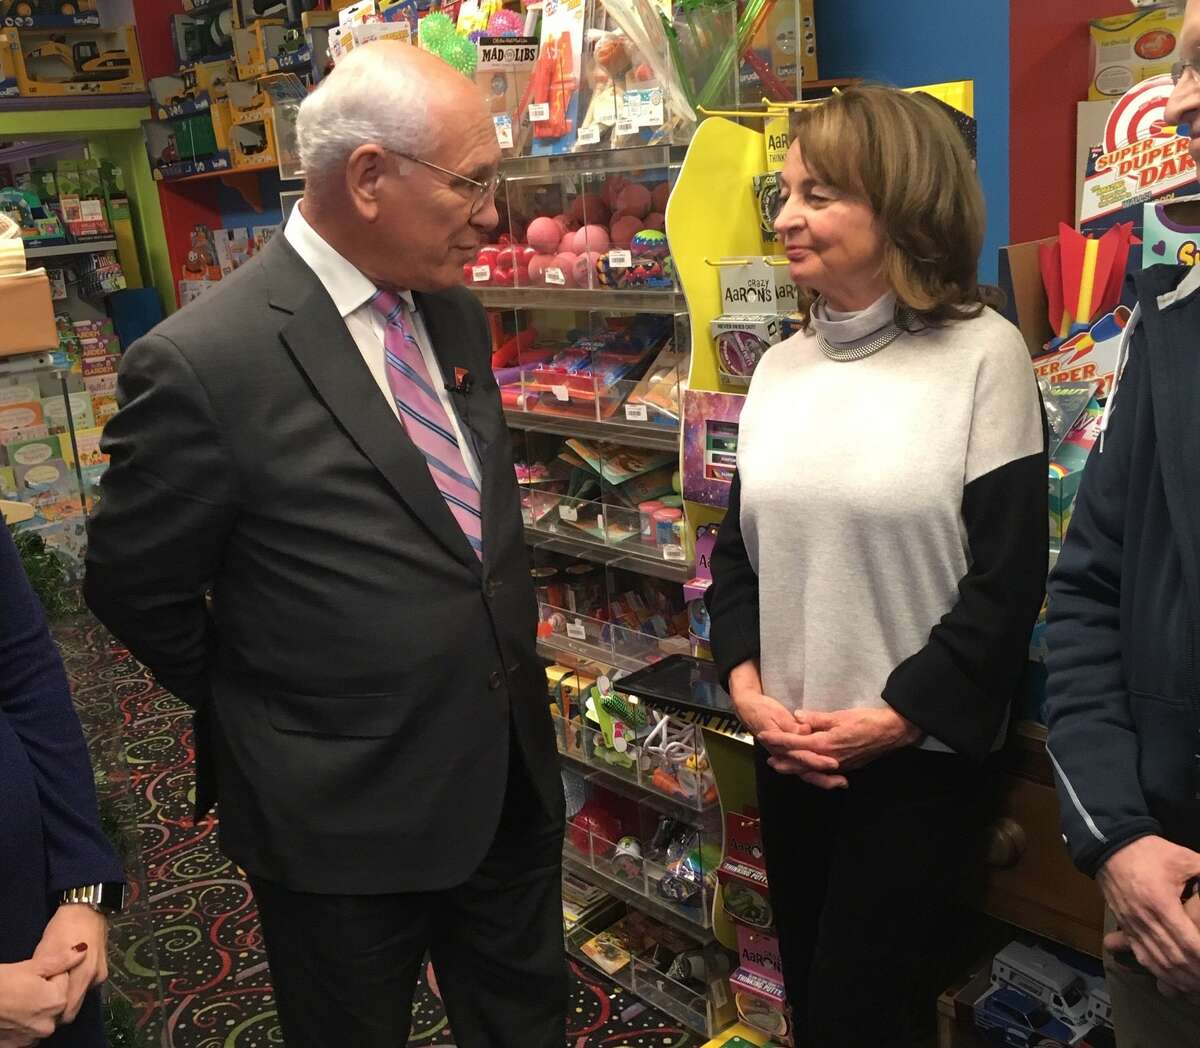 Rep. Paul Tonko (D-Amsterdam) and Linda Ambrosino, the owner of G. Willikers toy store in Saratoga Springs, talk in her store on Sunday, Dec. 15, 2019.